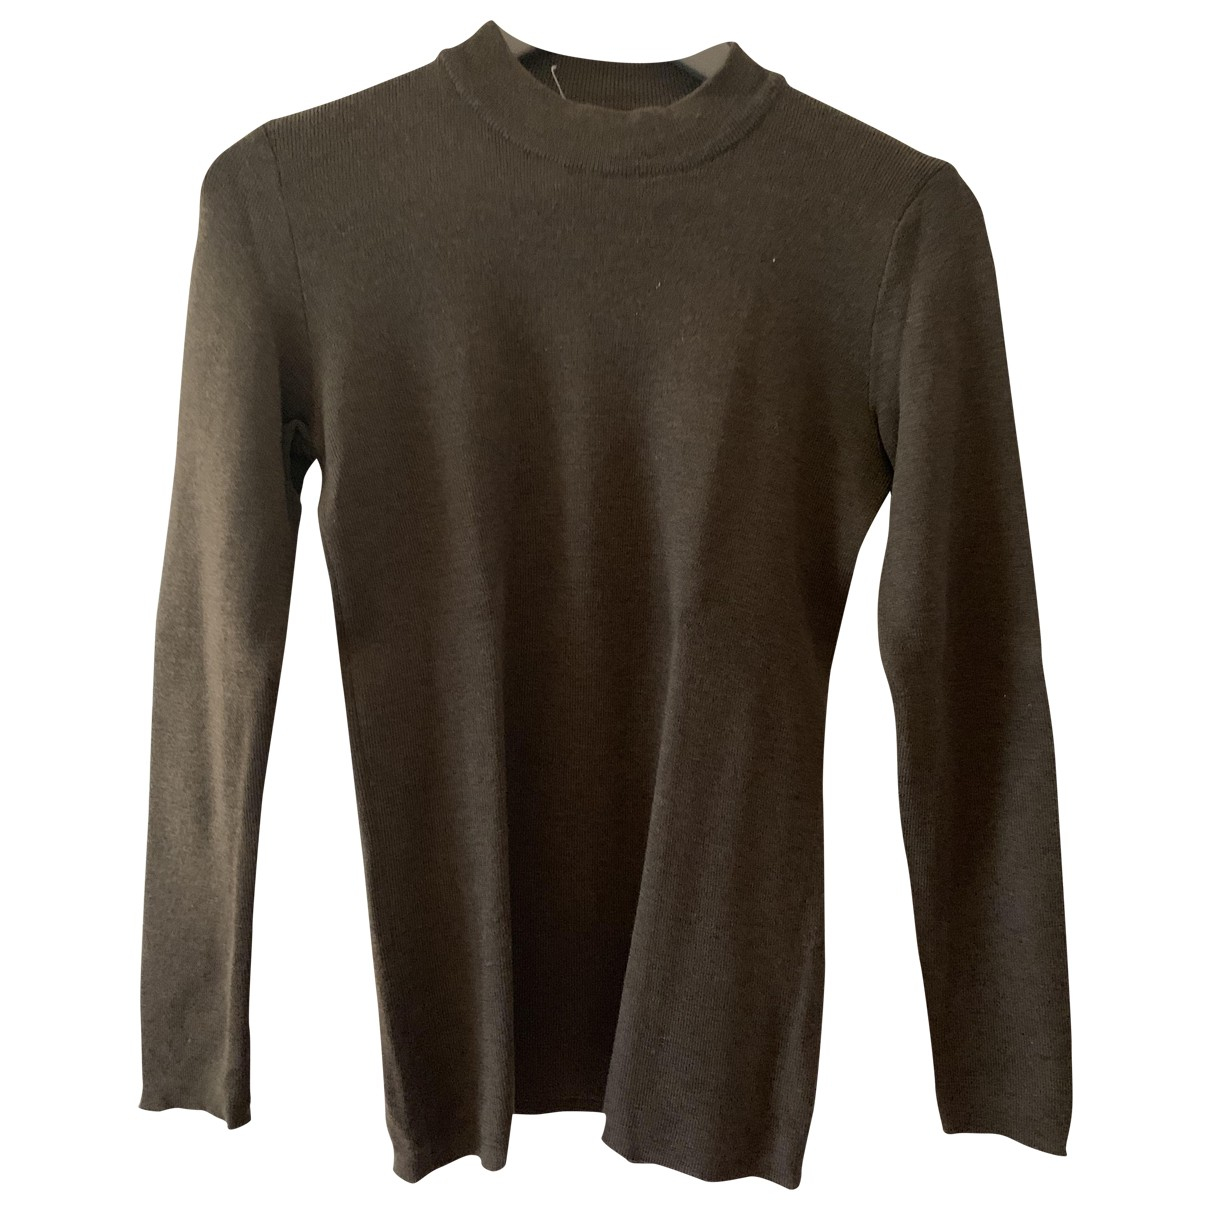 Yves Saint Laurent \N Pullover in  Braun Wolle